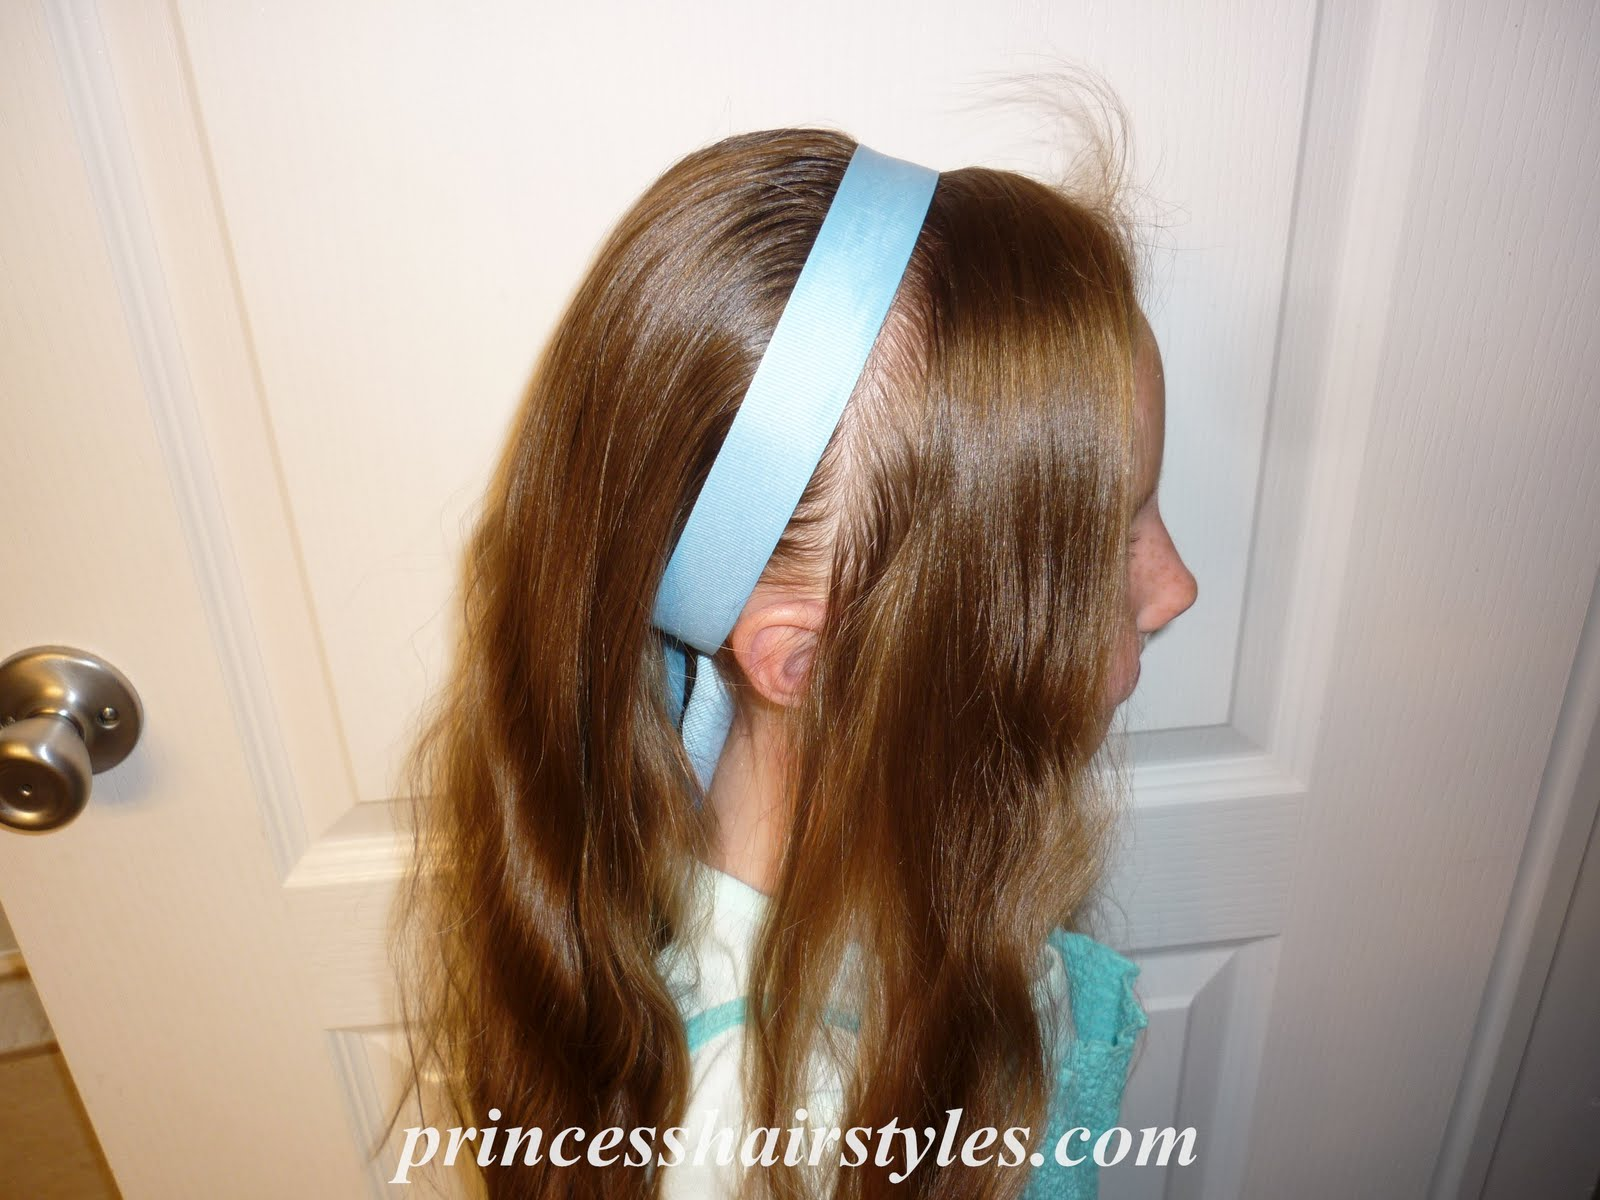 Hair Styles For A Dance: Hairstyles For Girls: Hairstyles For Dance Competition